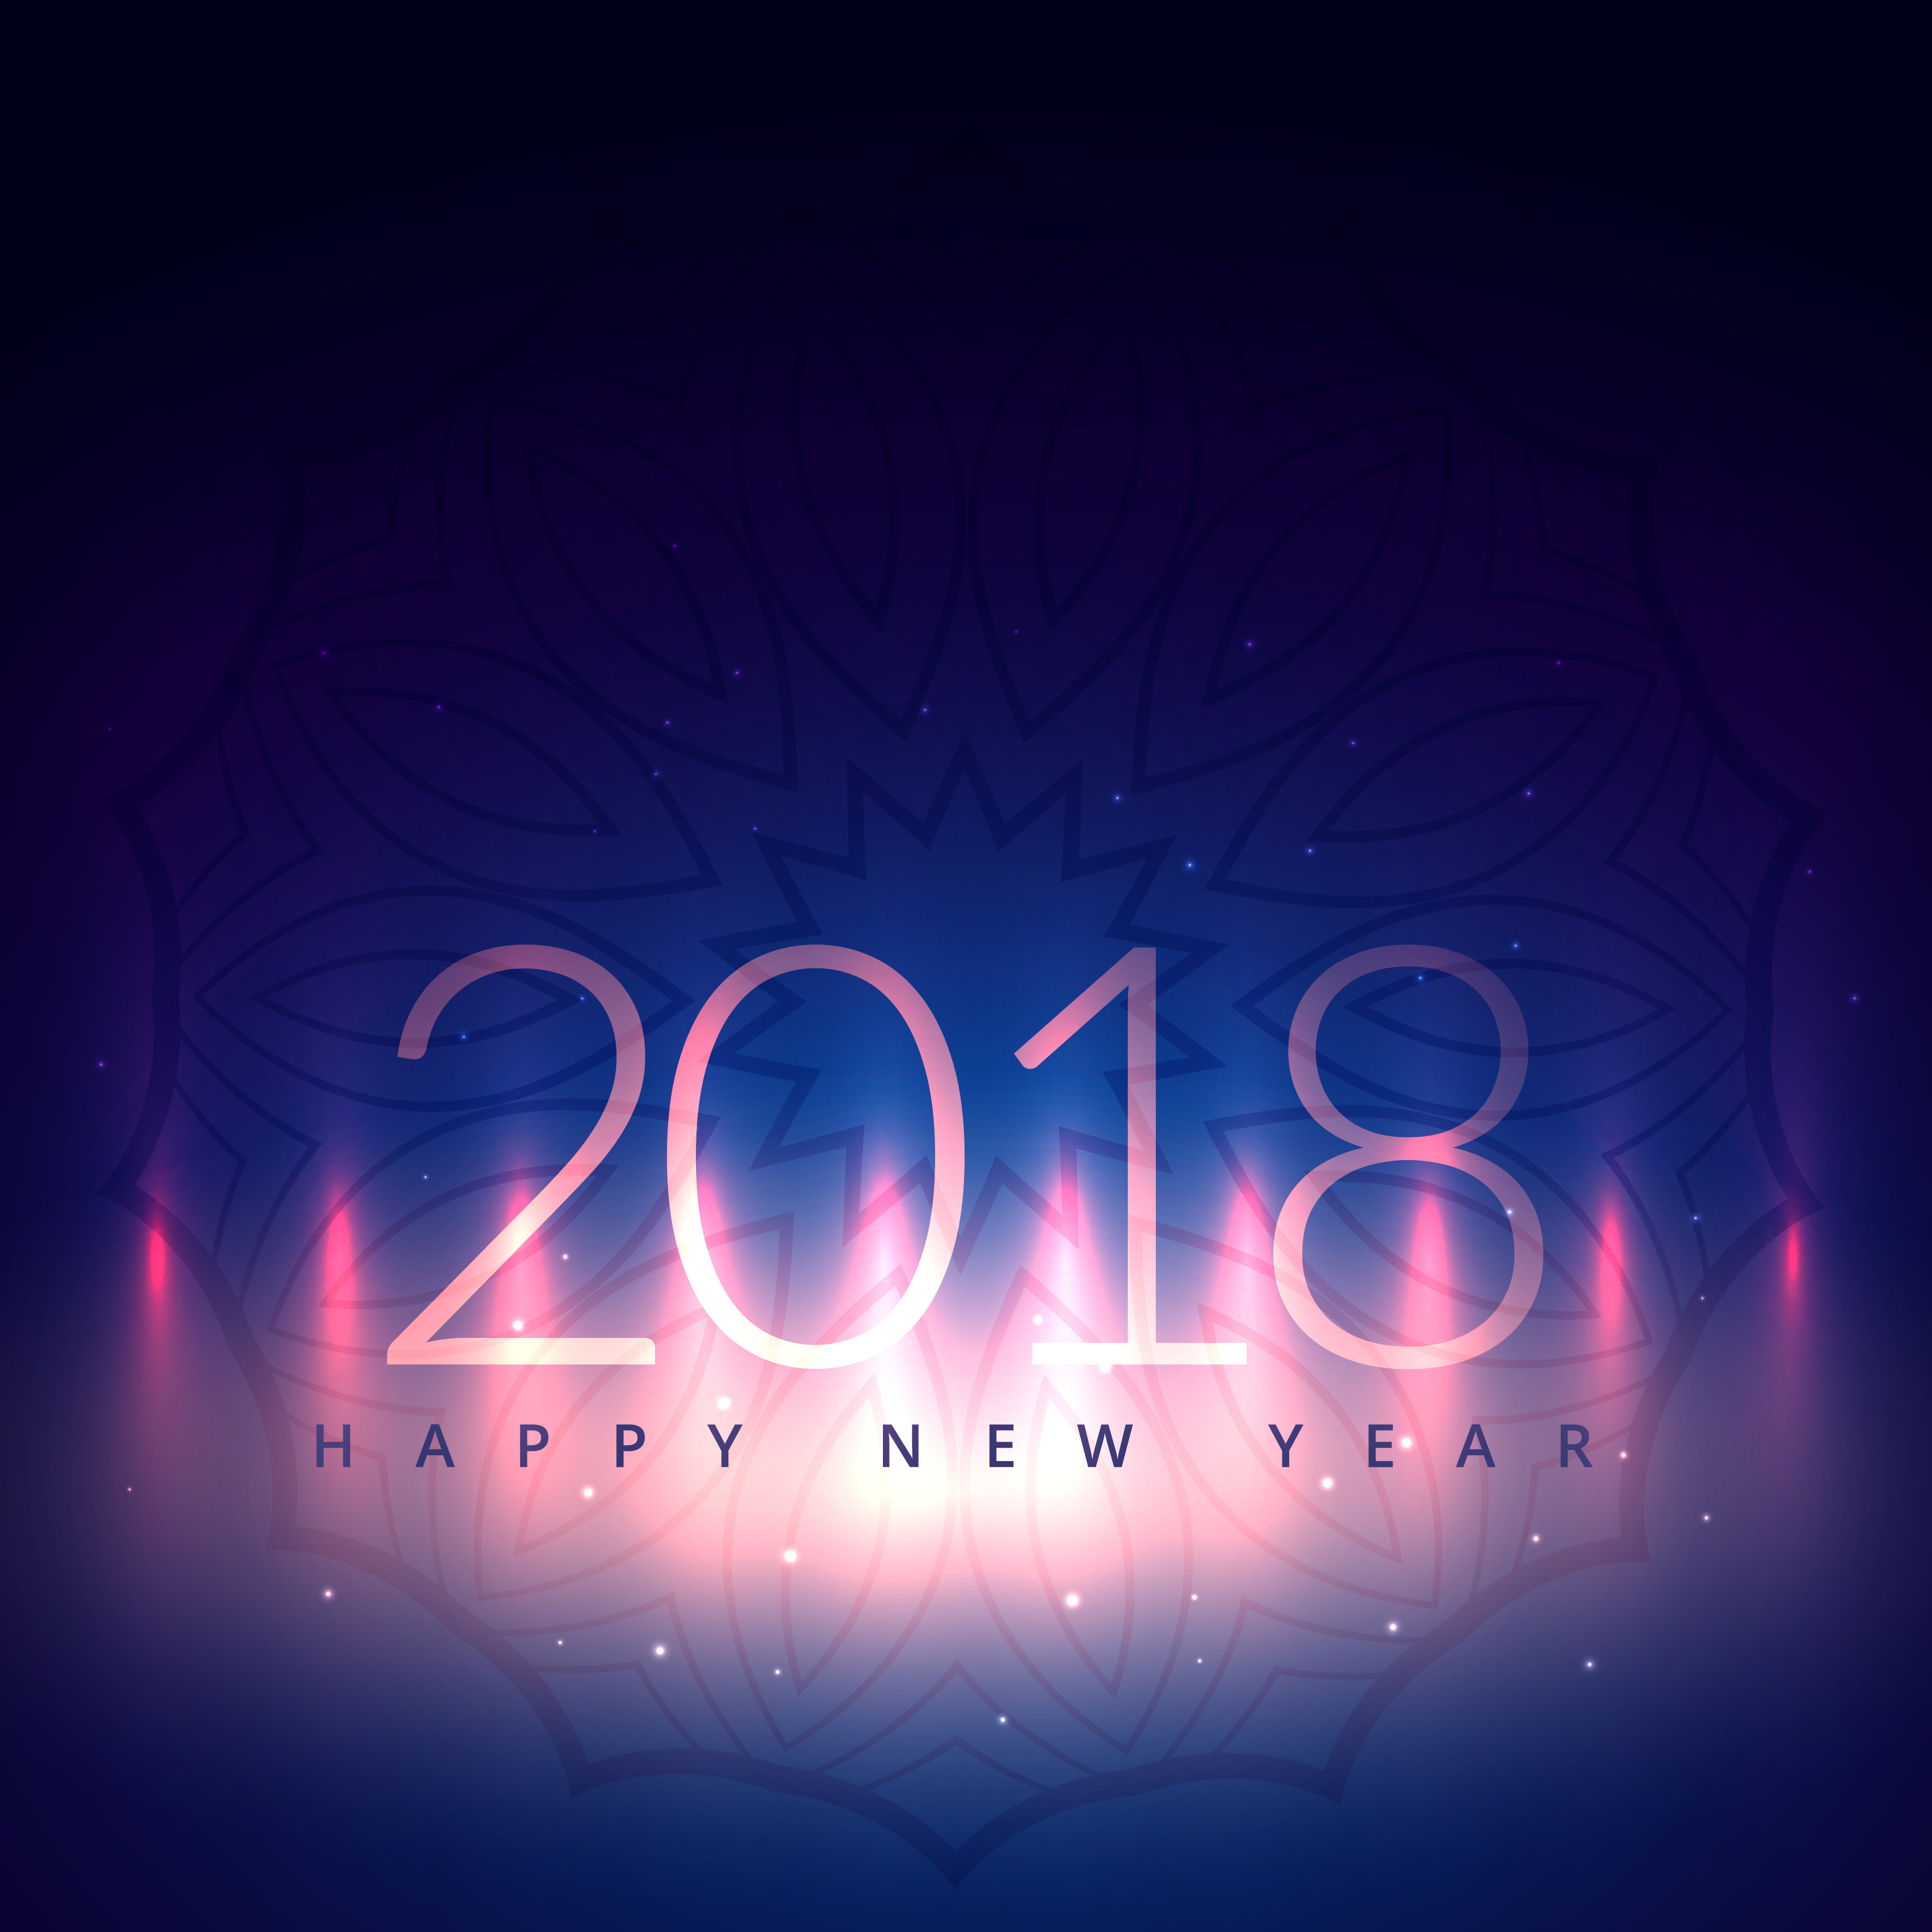 2018 New Year Card Design With Light Effect Download